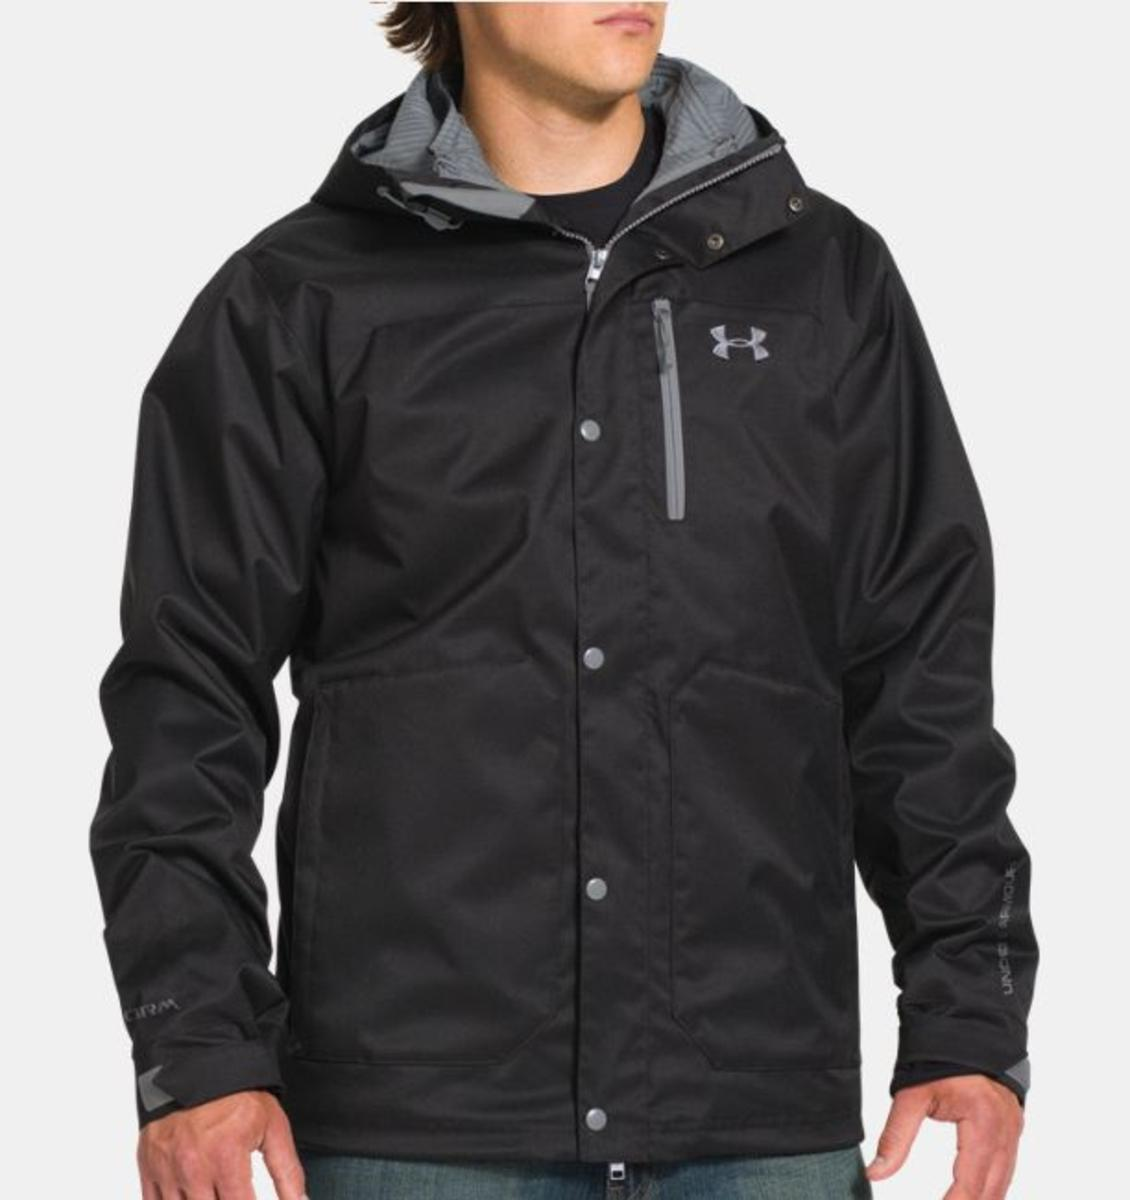 652519c2ed5f Under Armour Mens UA Storm ColdGear Infrared Porter 3-in-1 Jacket